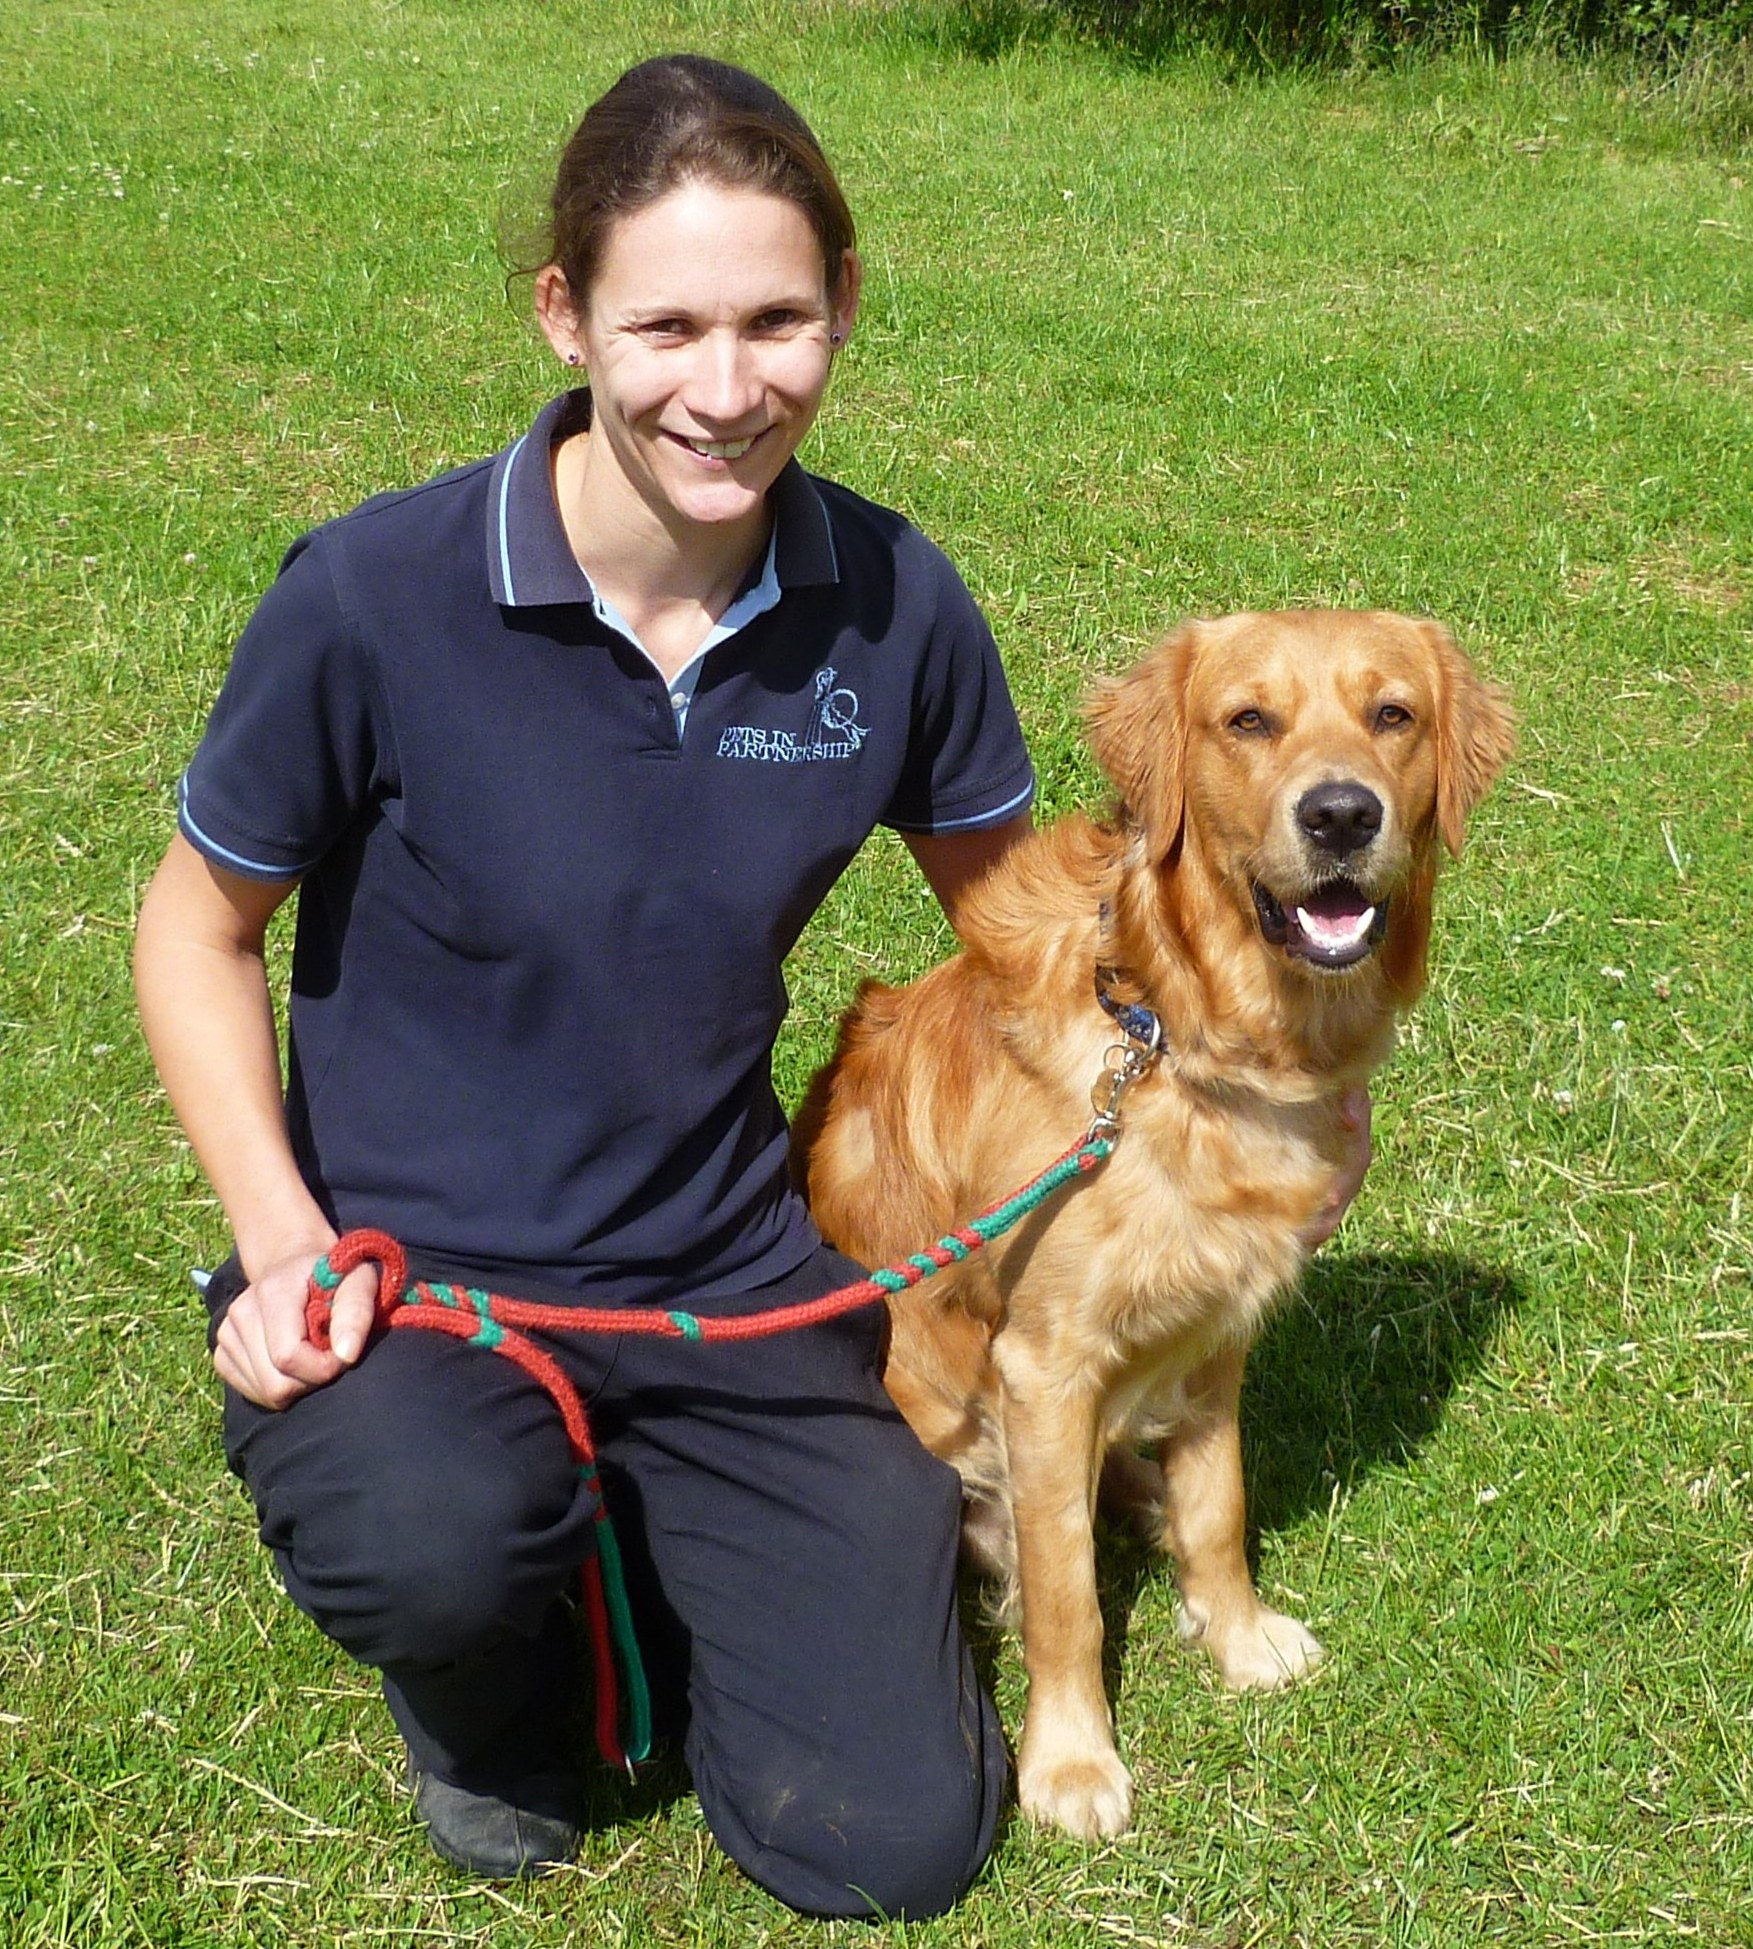 How To Become A Guide Dog Trainer